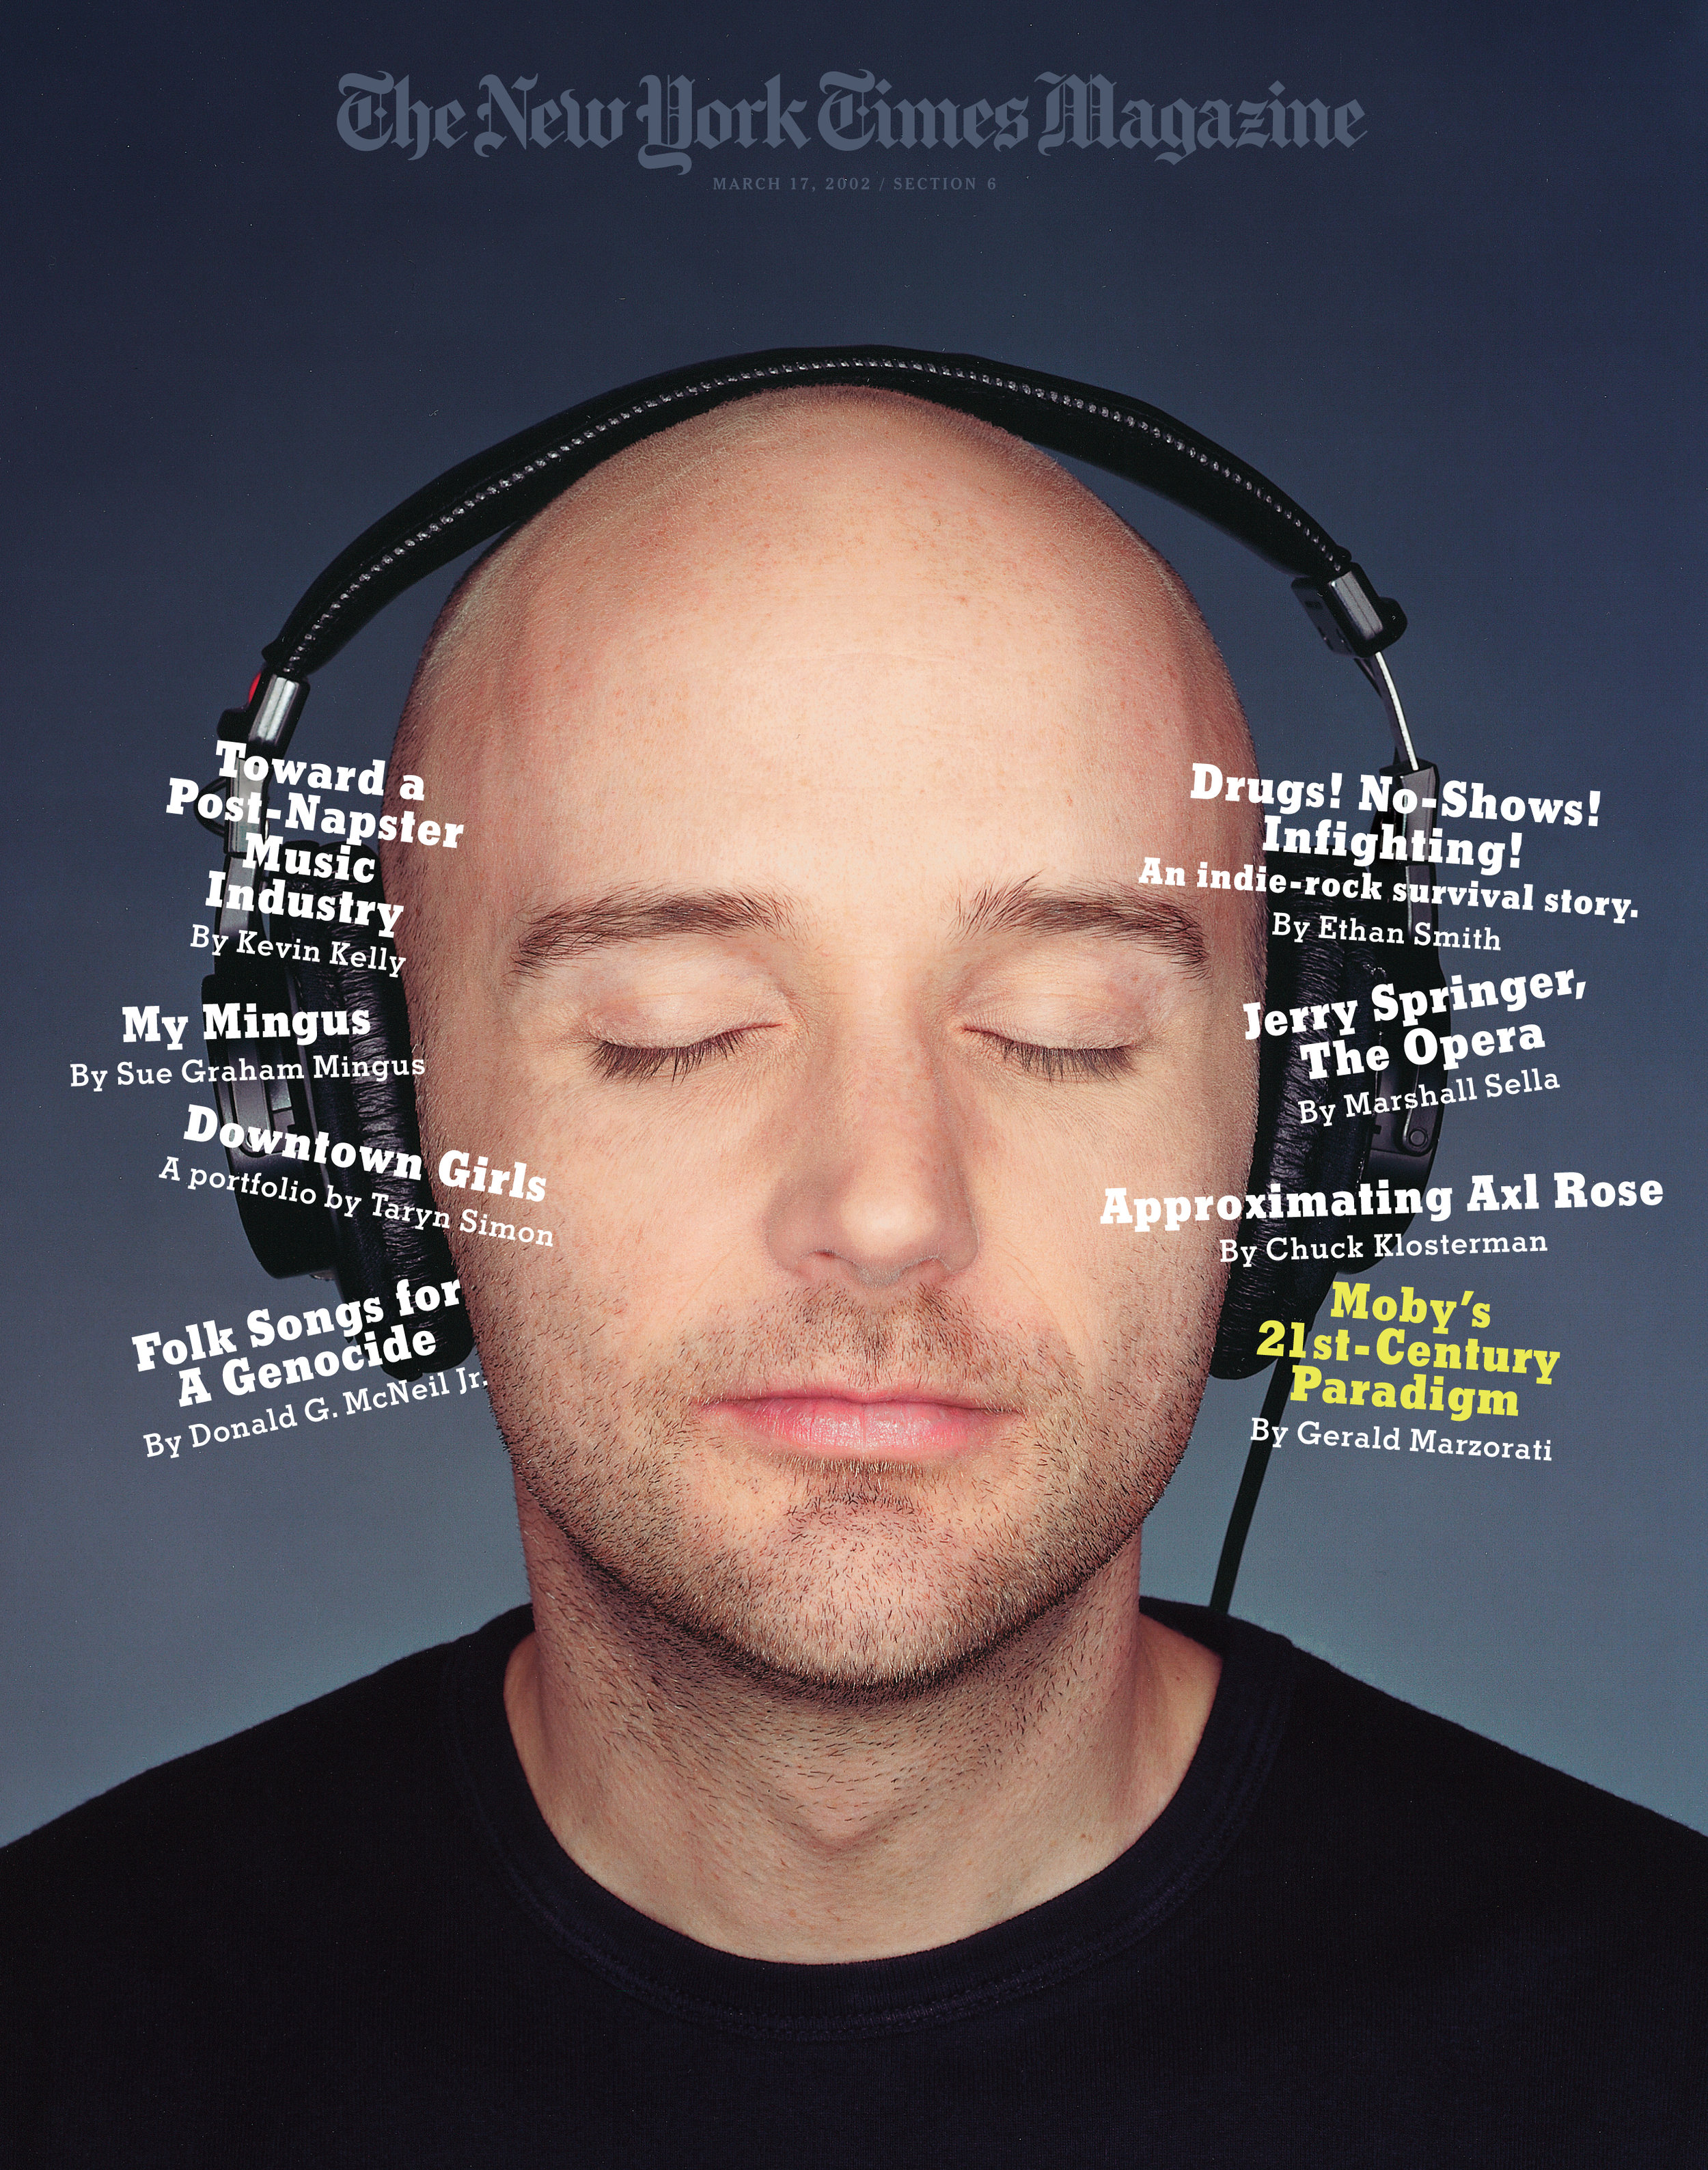 COVER.03.17.02.Moby-Cover.jpg